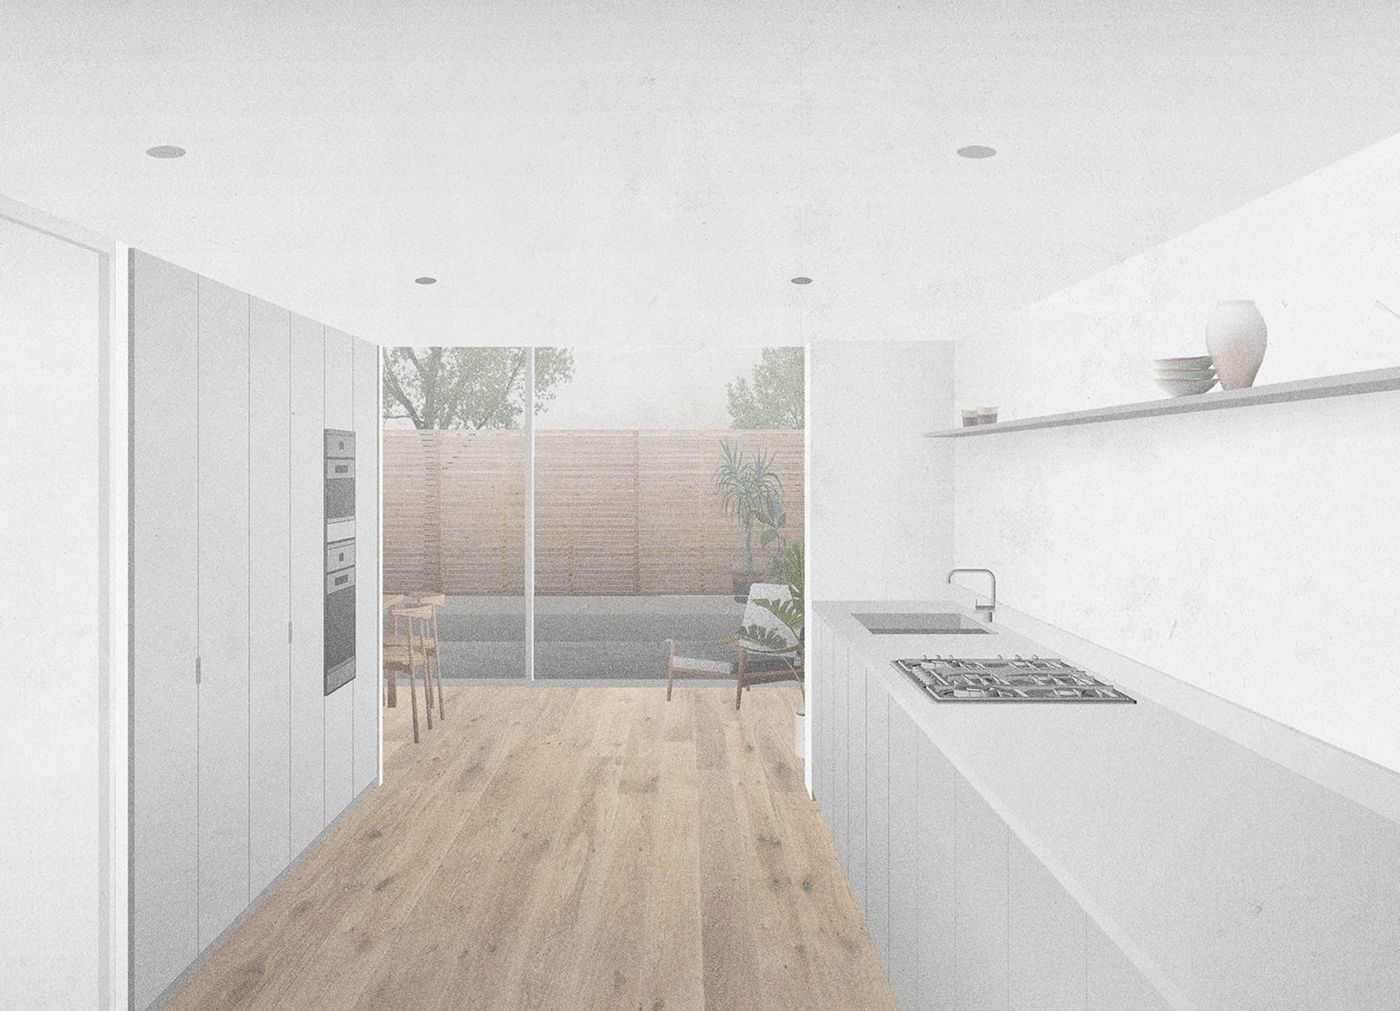 Interior view of the light grey kitchen looking out towards the new rear extension within From Works refurbishment and extension in Blackheath, London.